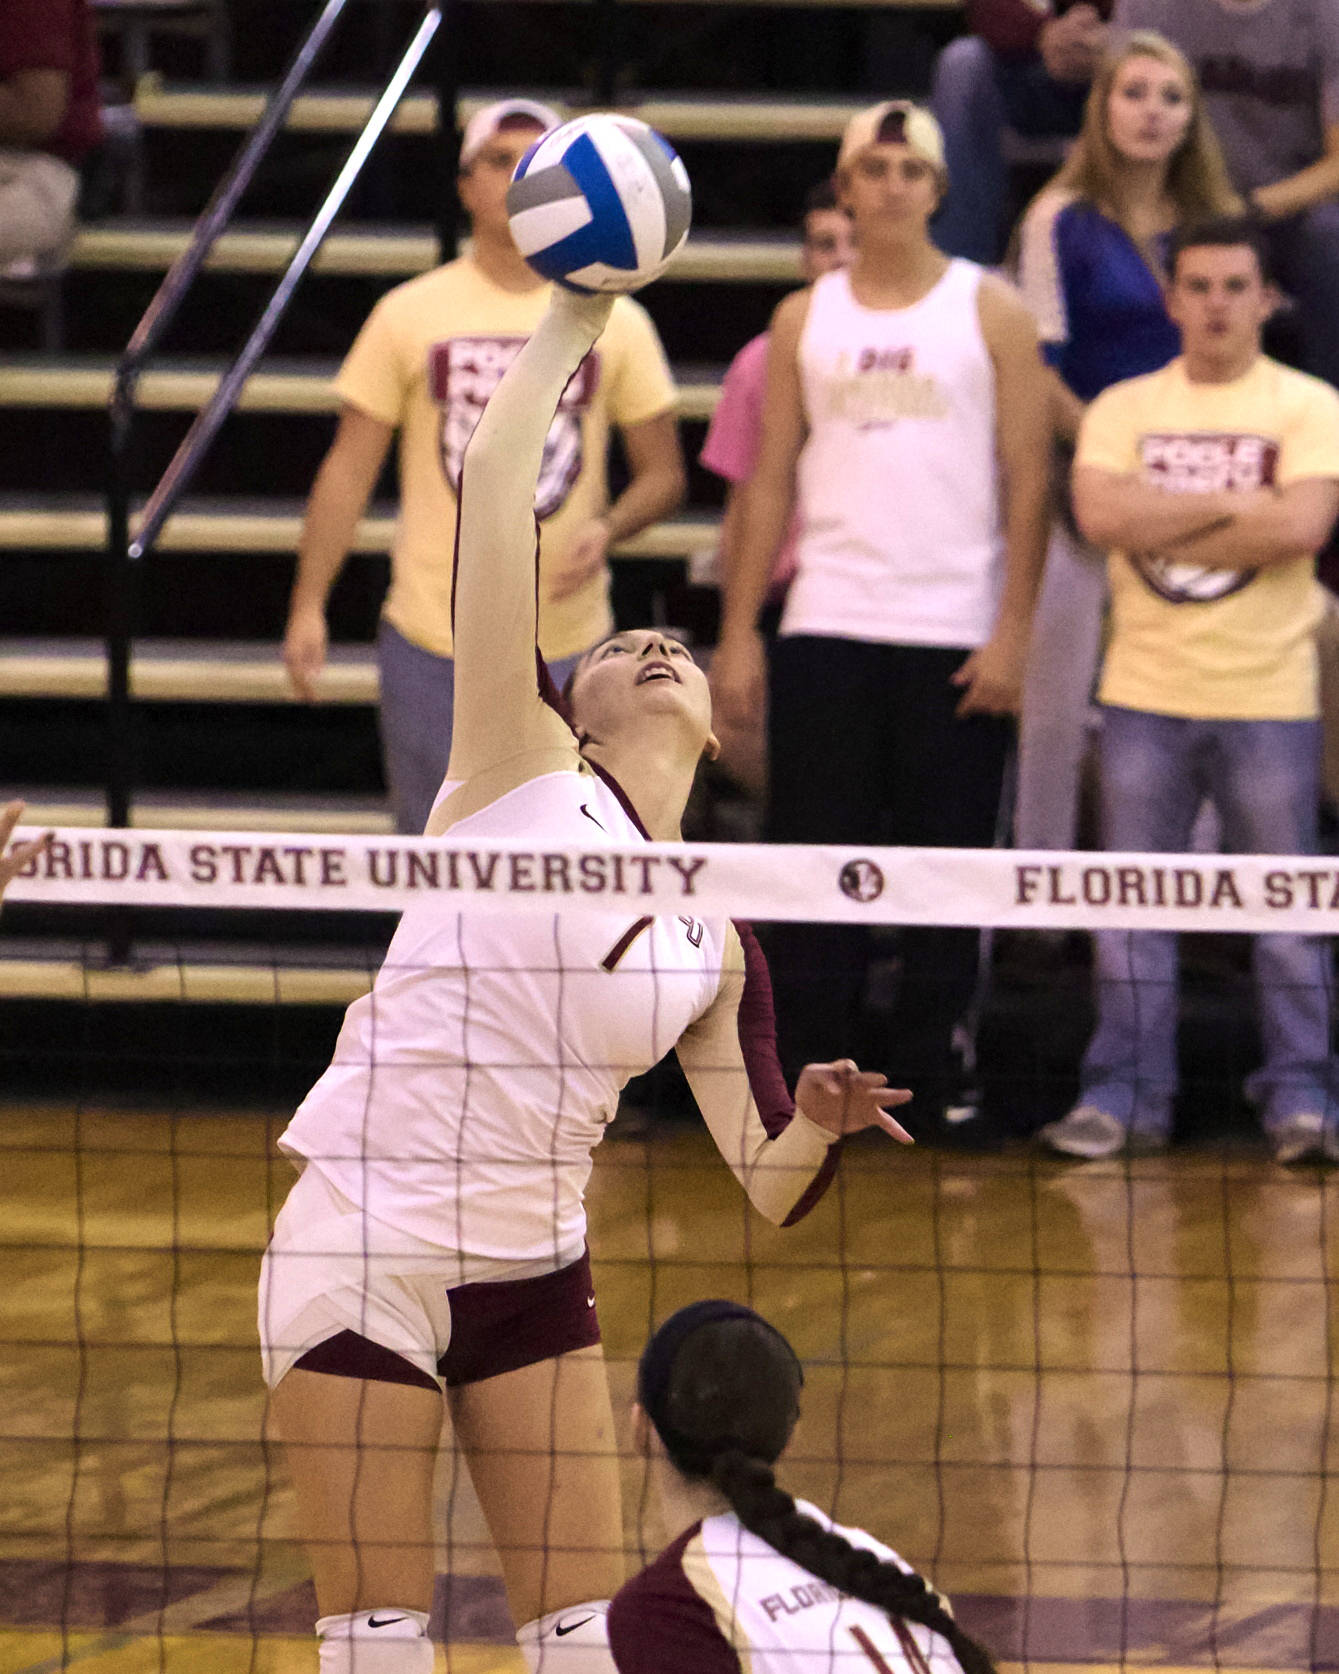 Fatma Yildirim (7), FSU vs Hofstra, 11/30/12. (Photo by Steve Musco)